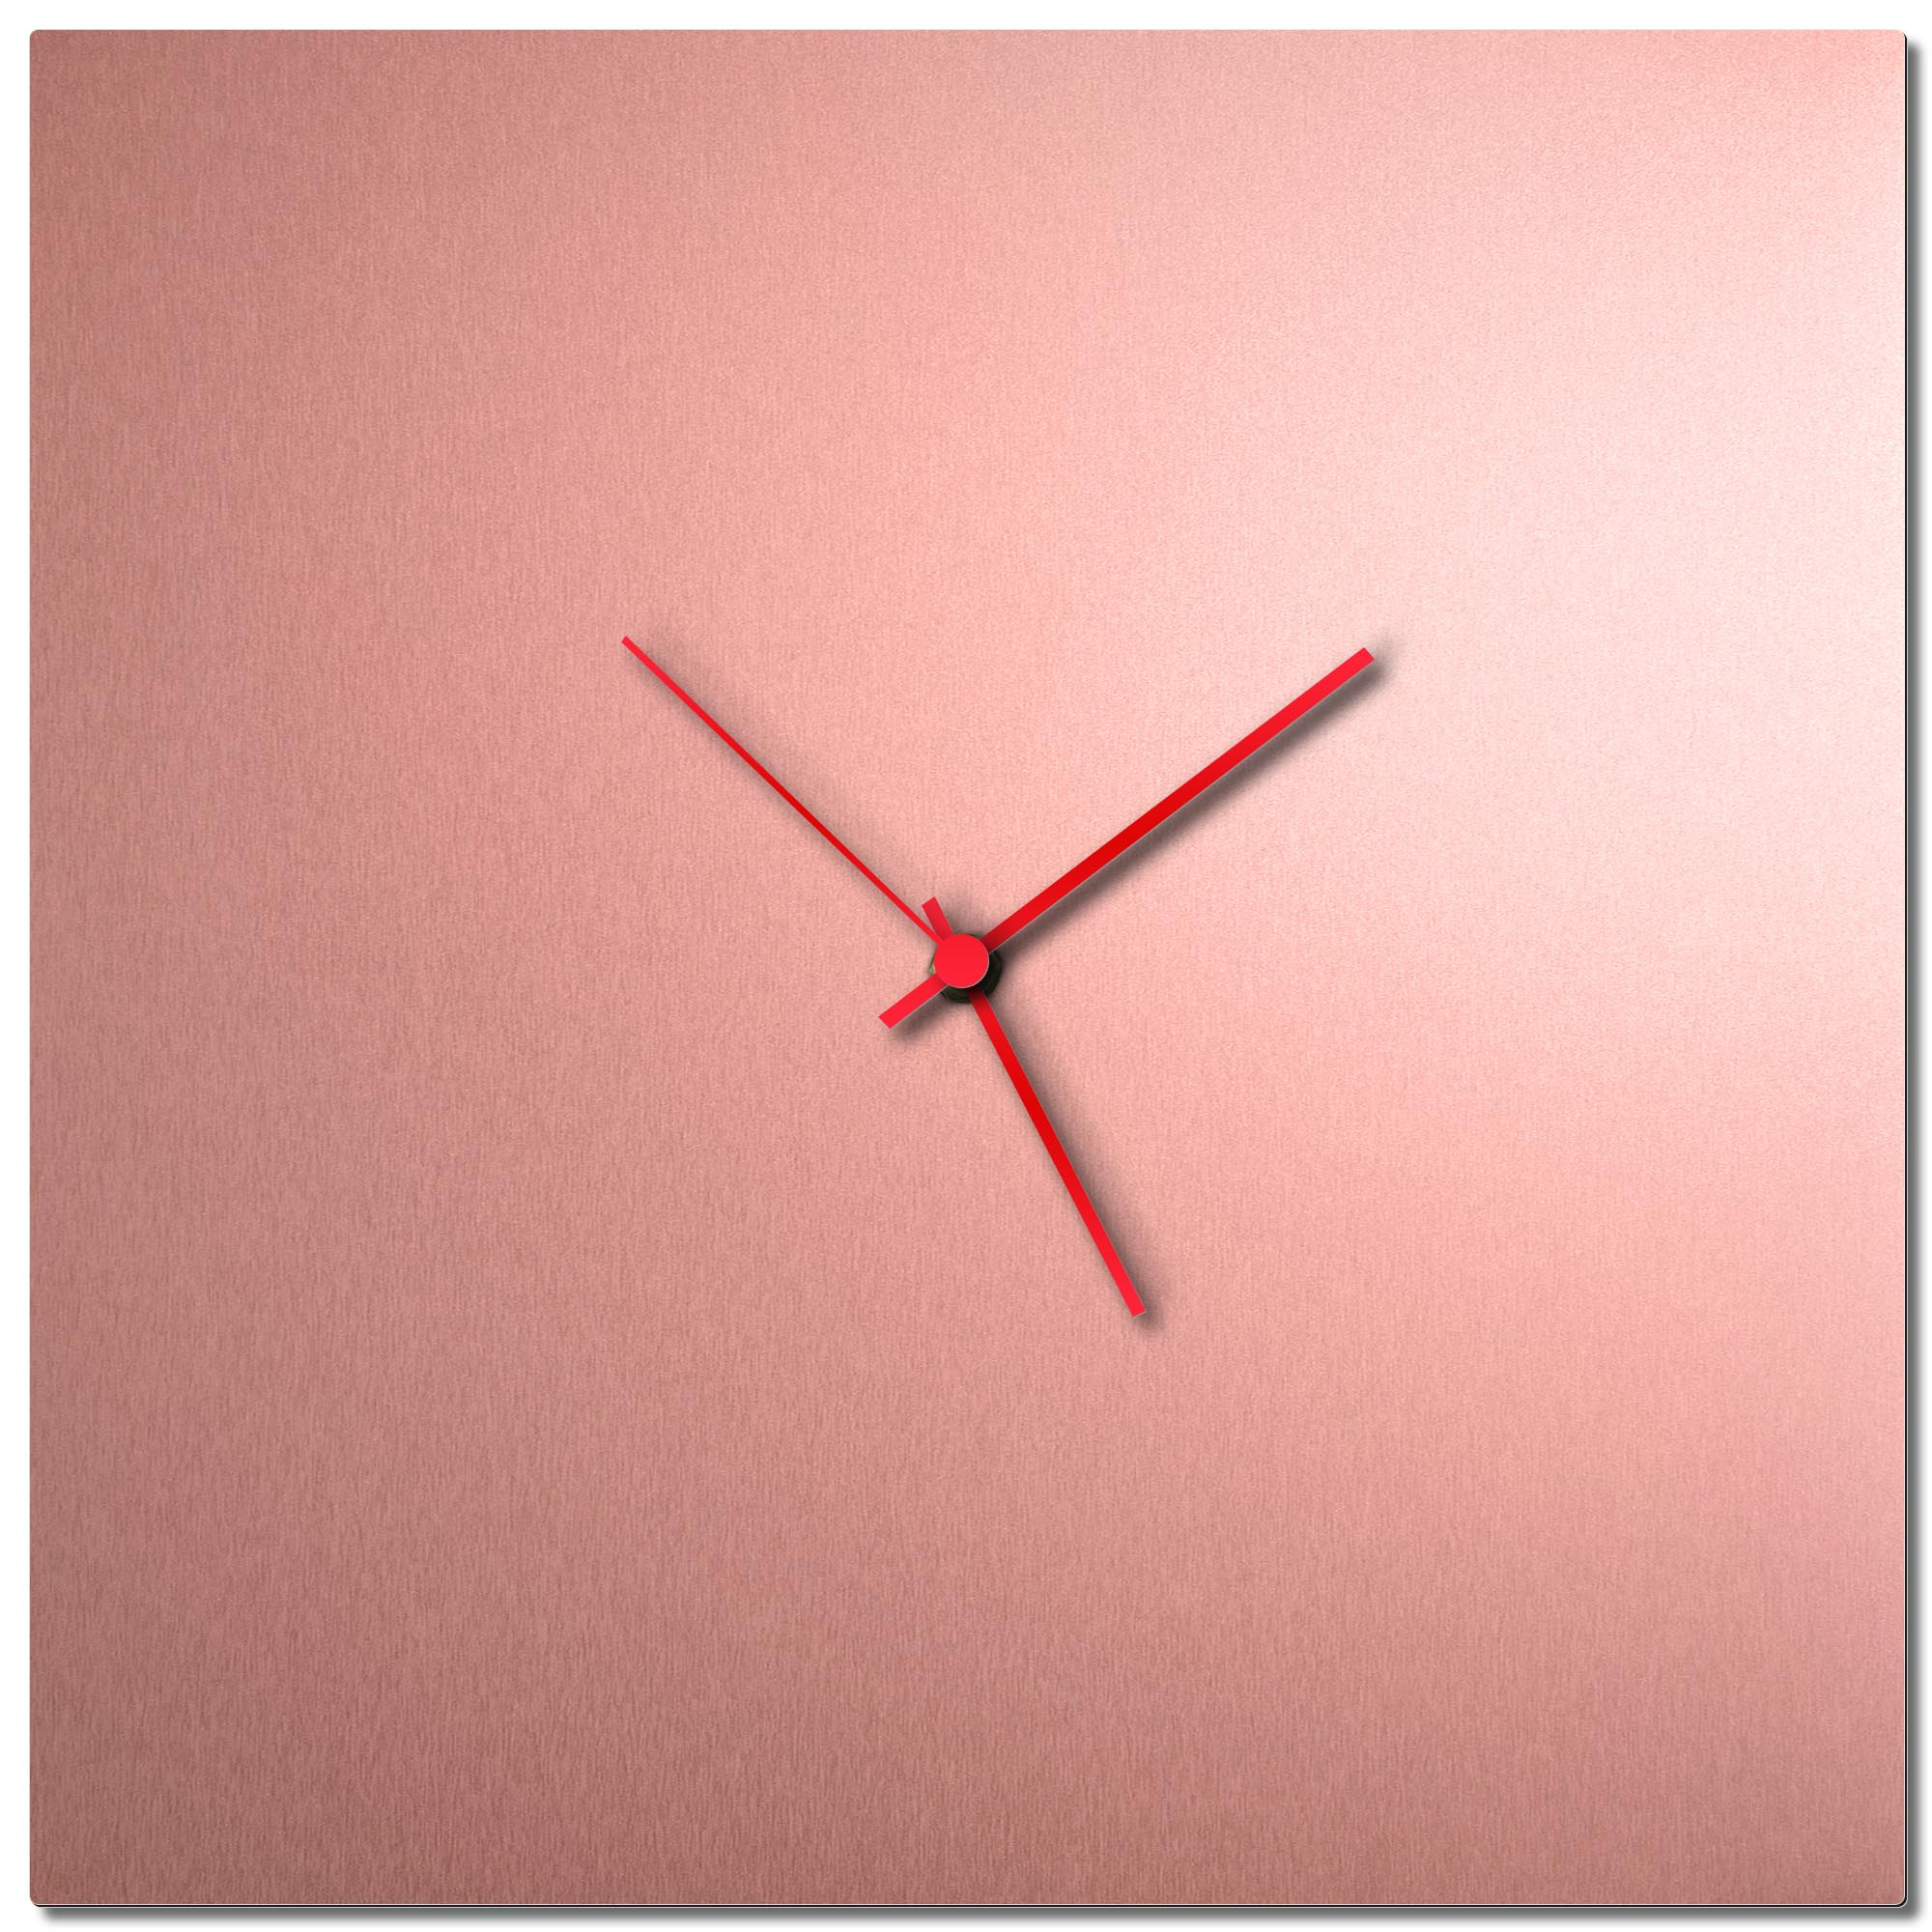 Adam Schwoeppe 'Coppersmith Square Clock Large Red' Midcentury Modern Style Wall Clock